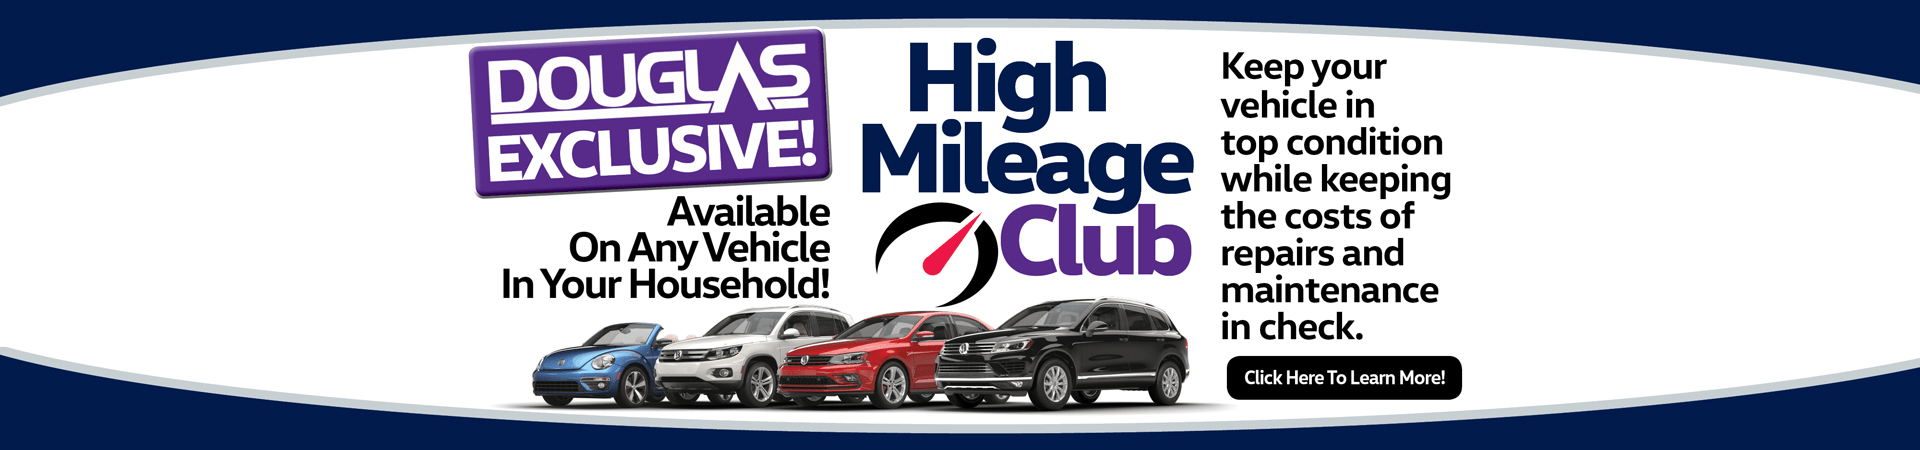 The Exclusive Douglas VW High Mileage Club